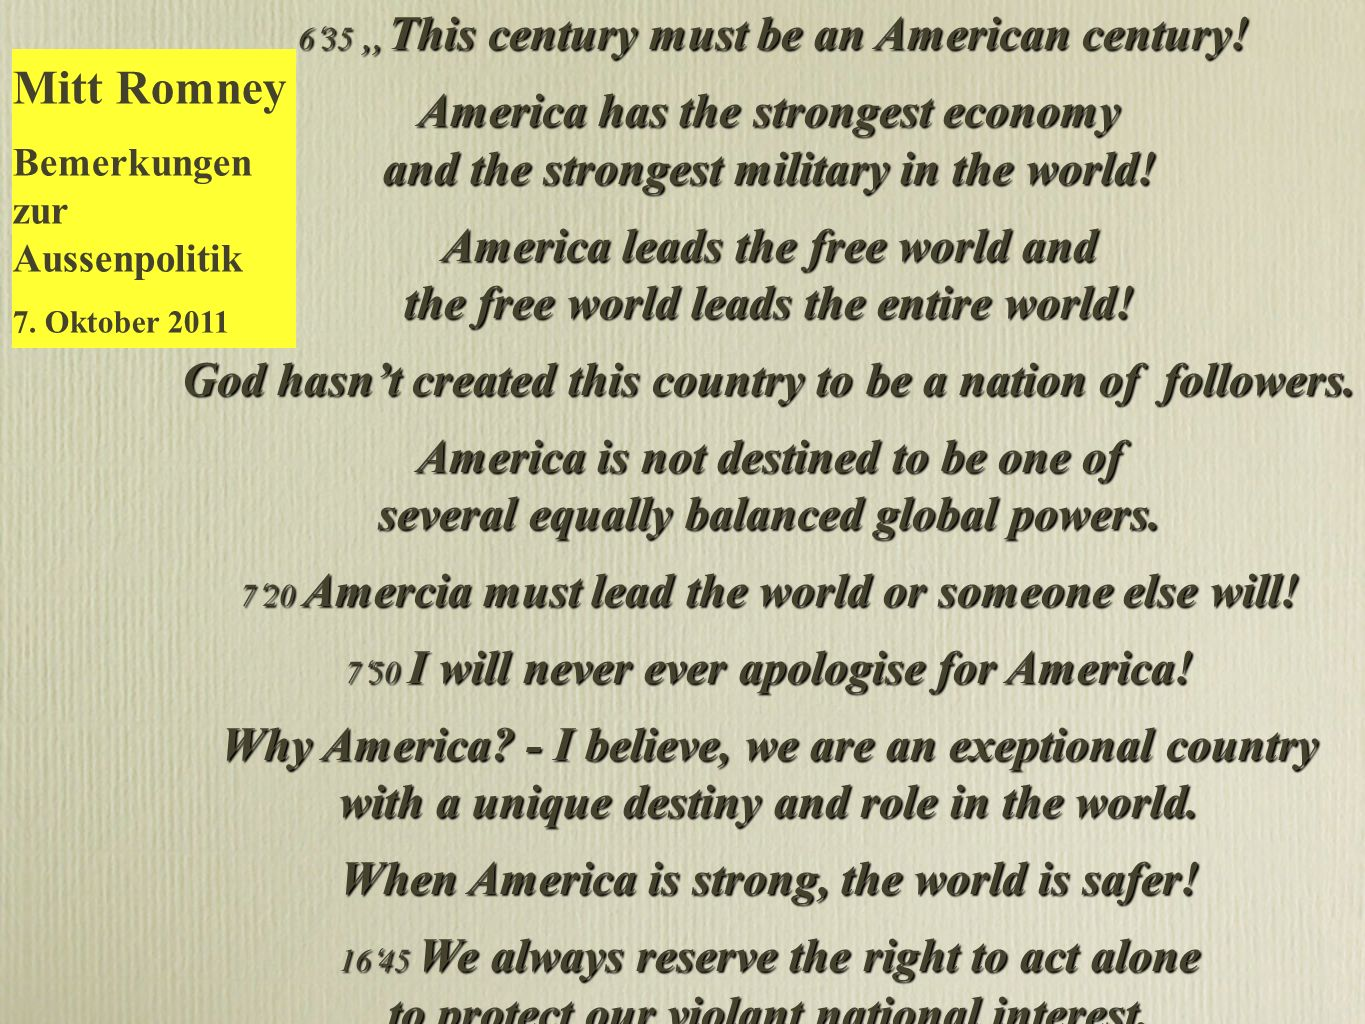 635 This century must be an American century! America has the strongest economy and the strongest military in the world! America leads the free world